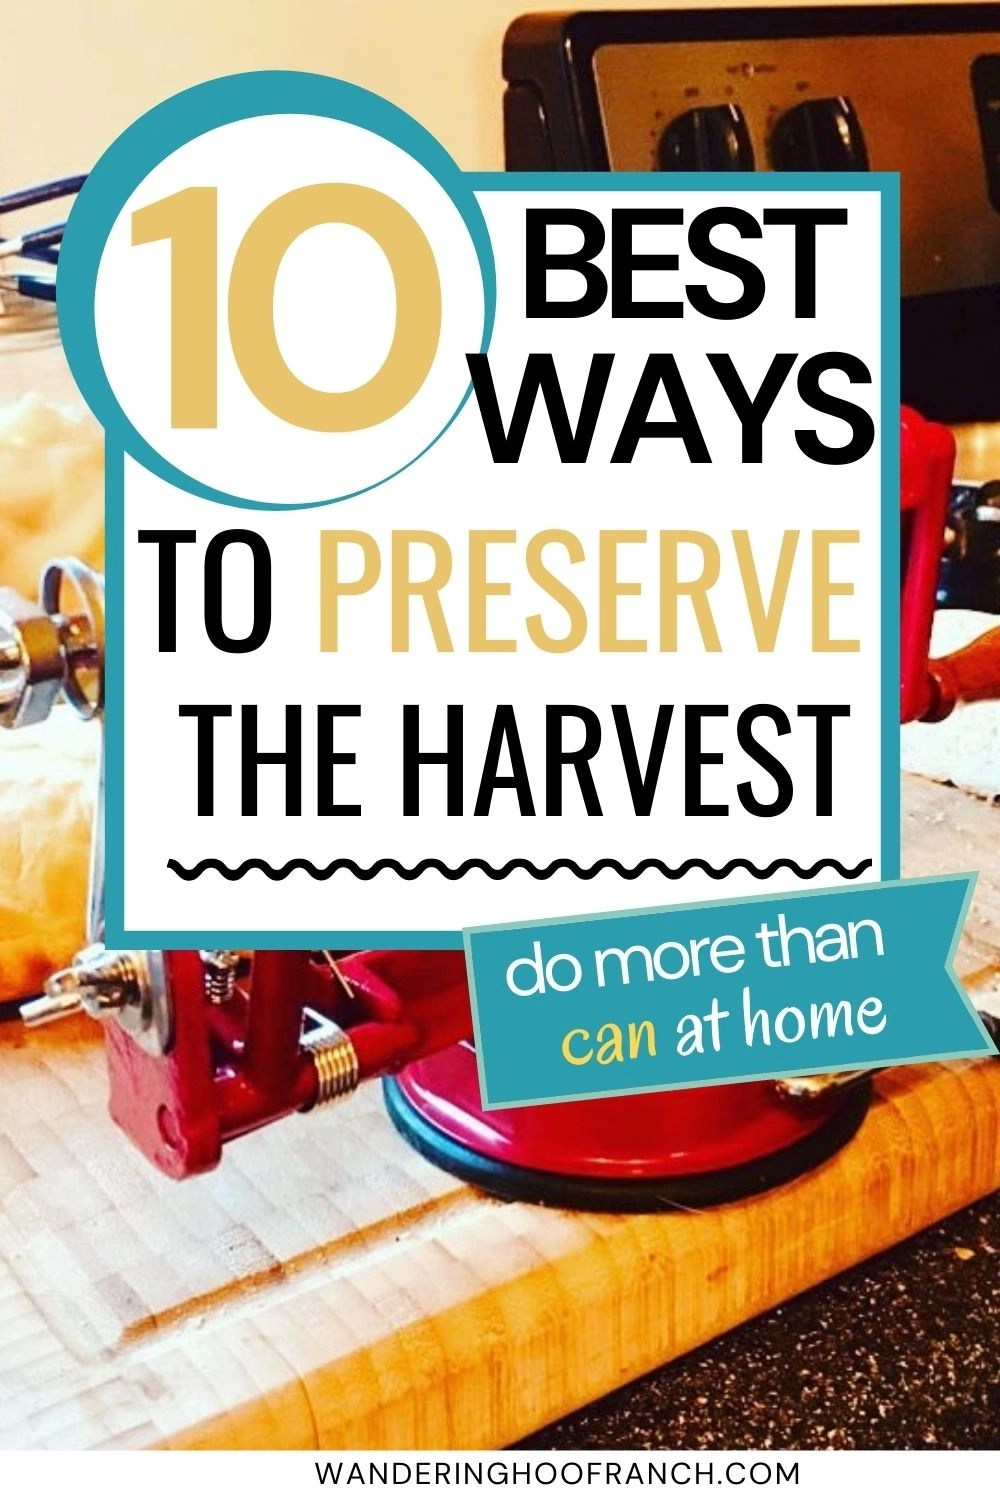 10 best ways to preserve the harvest at home, more than just canning pin image with blue stove, apple peeler and canning jars in the background